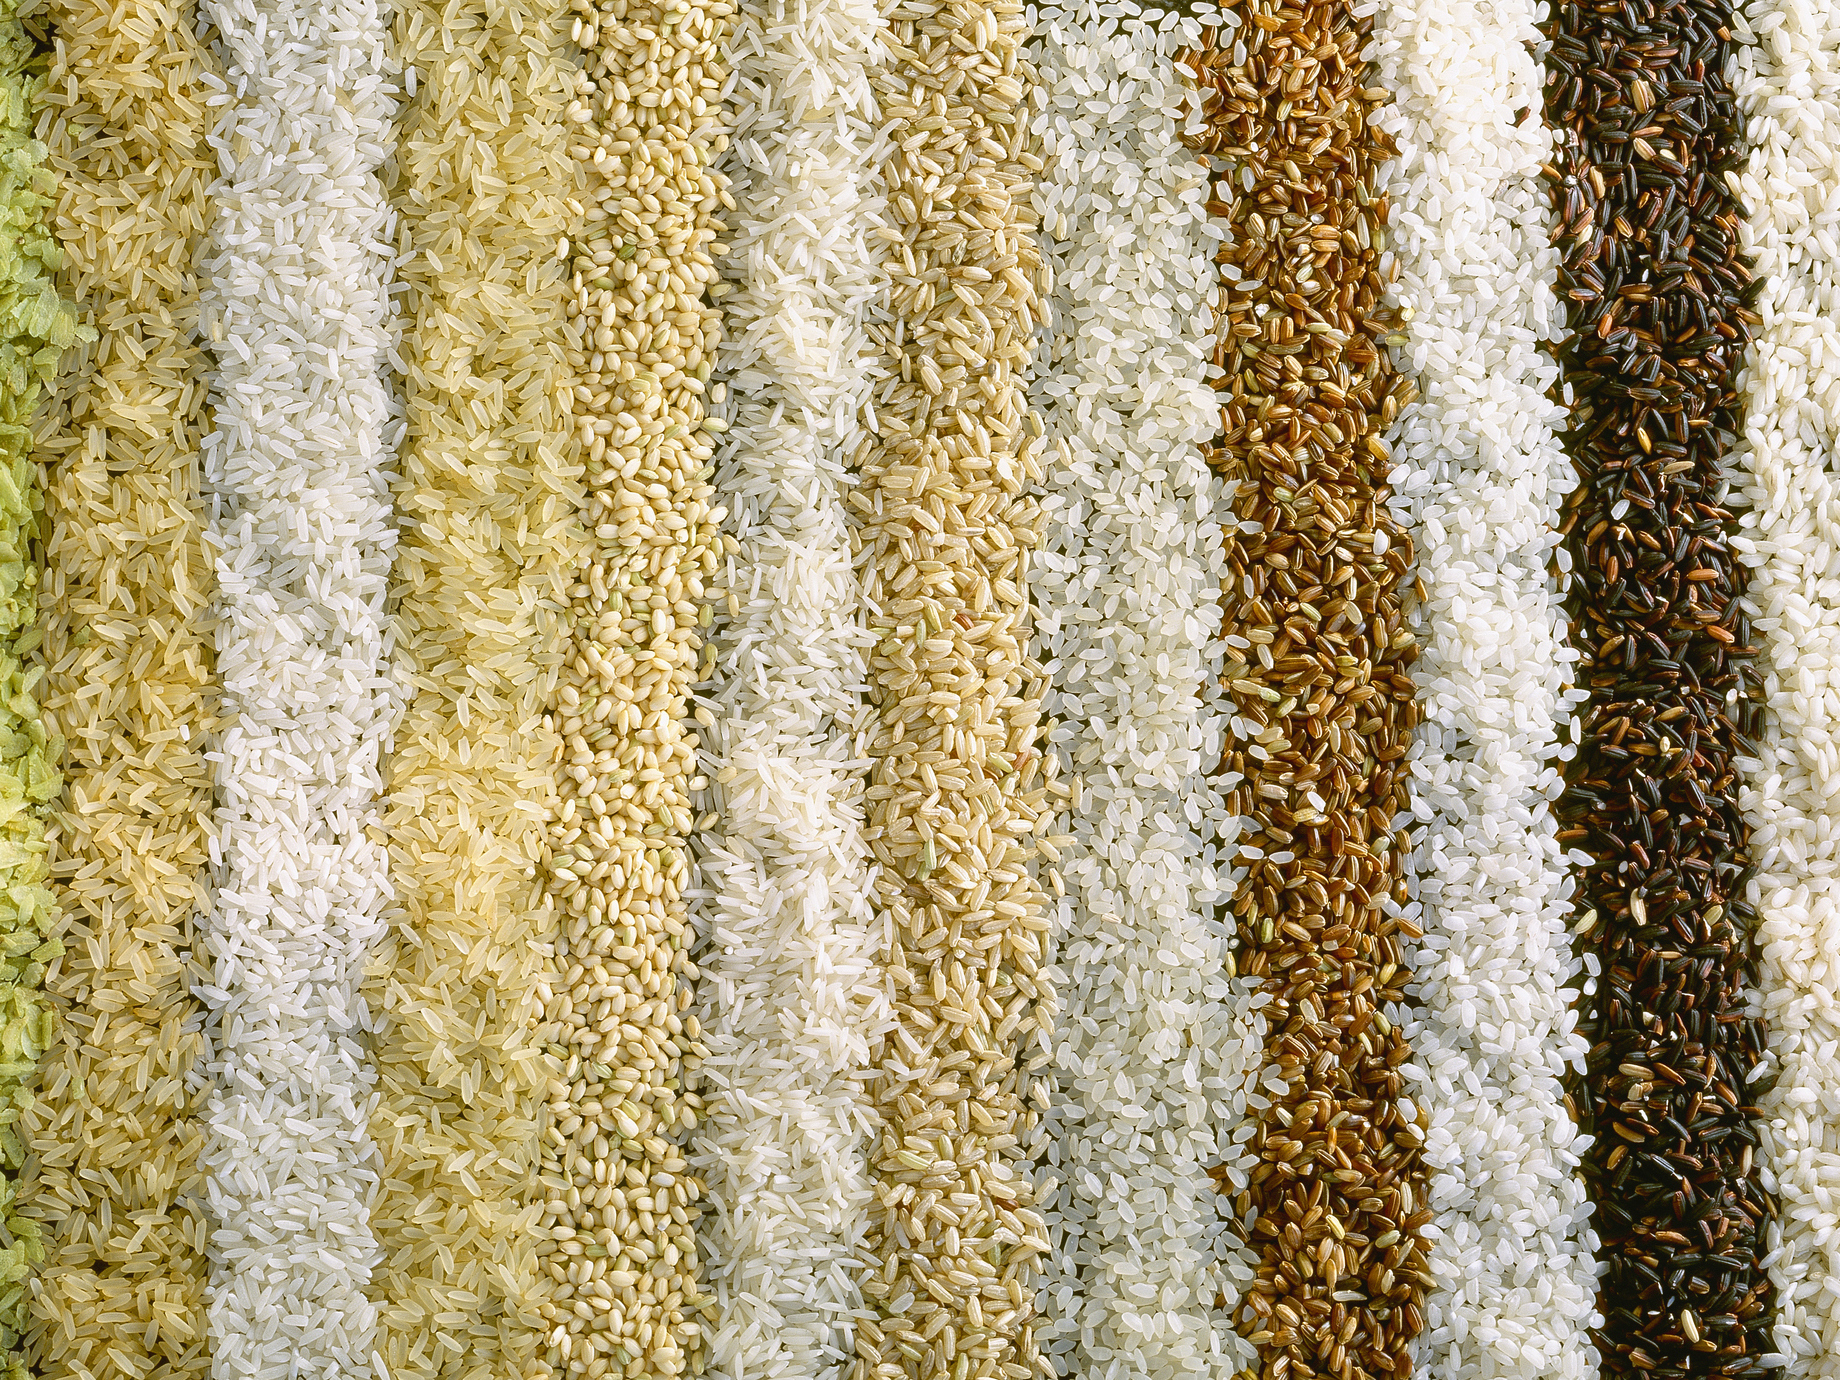 Rice will lose nutritional value as carbon dioxide levels rise